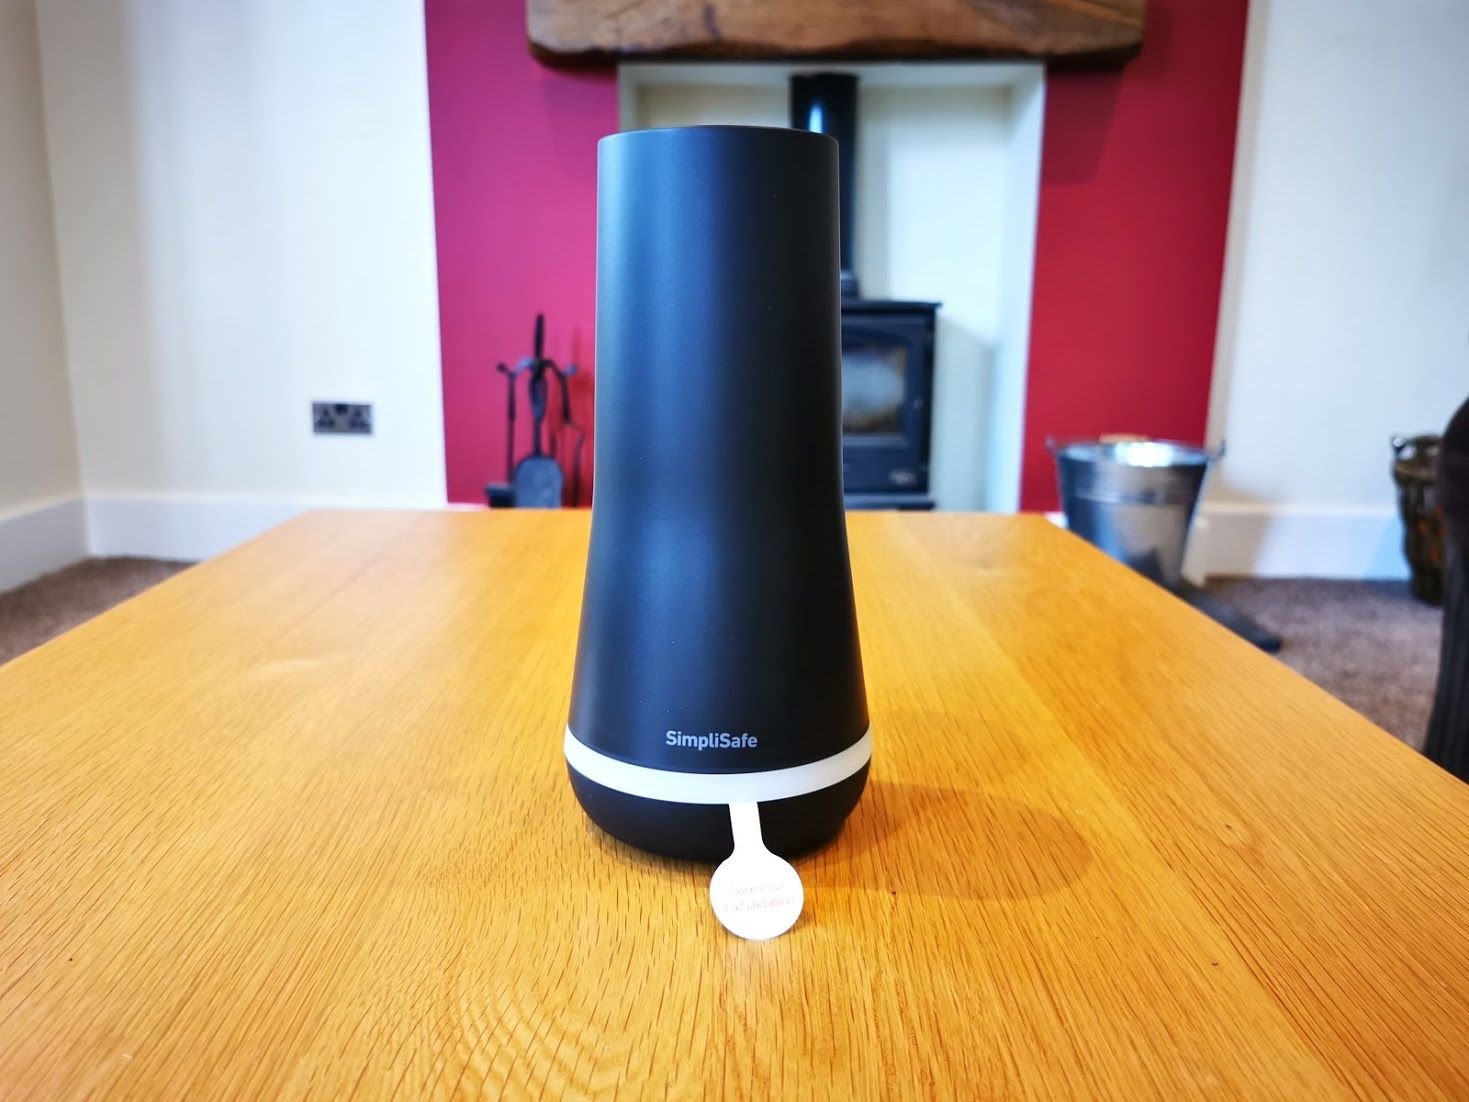 Simplisafe Review Uk The Self Install Monitored Alarm System Hopes To Shake Up The Uk Burglar Alarm Market Home Security Systems Wireless Home Security Systems Wireless Home Security